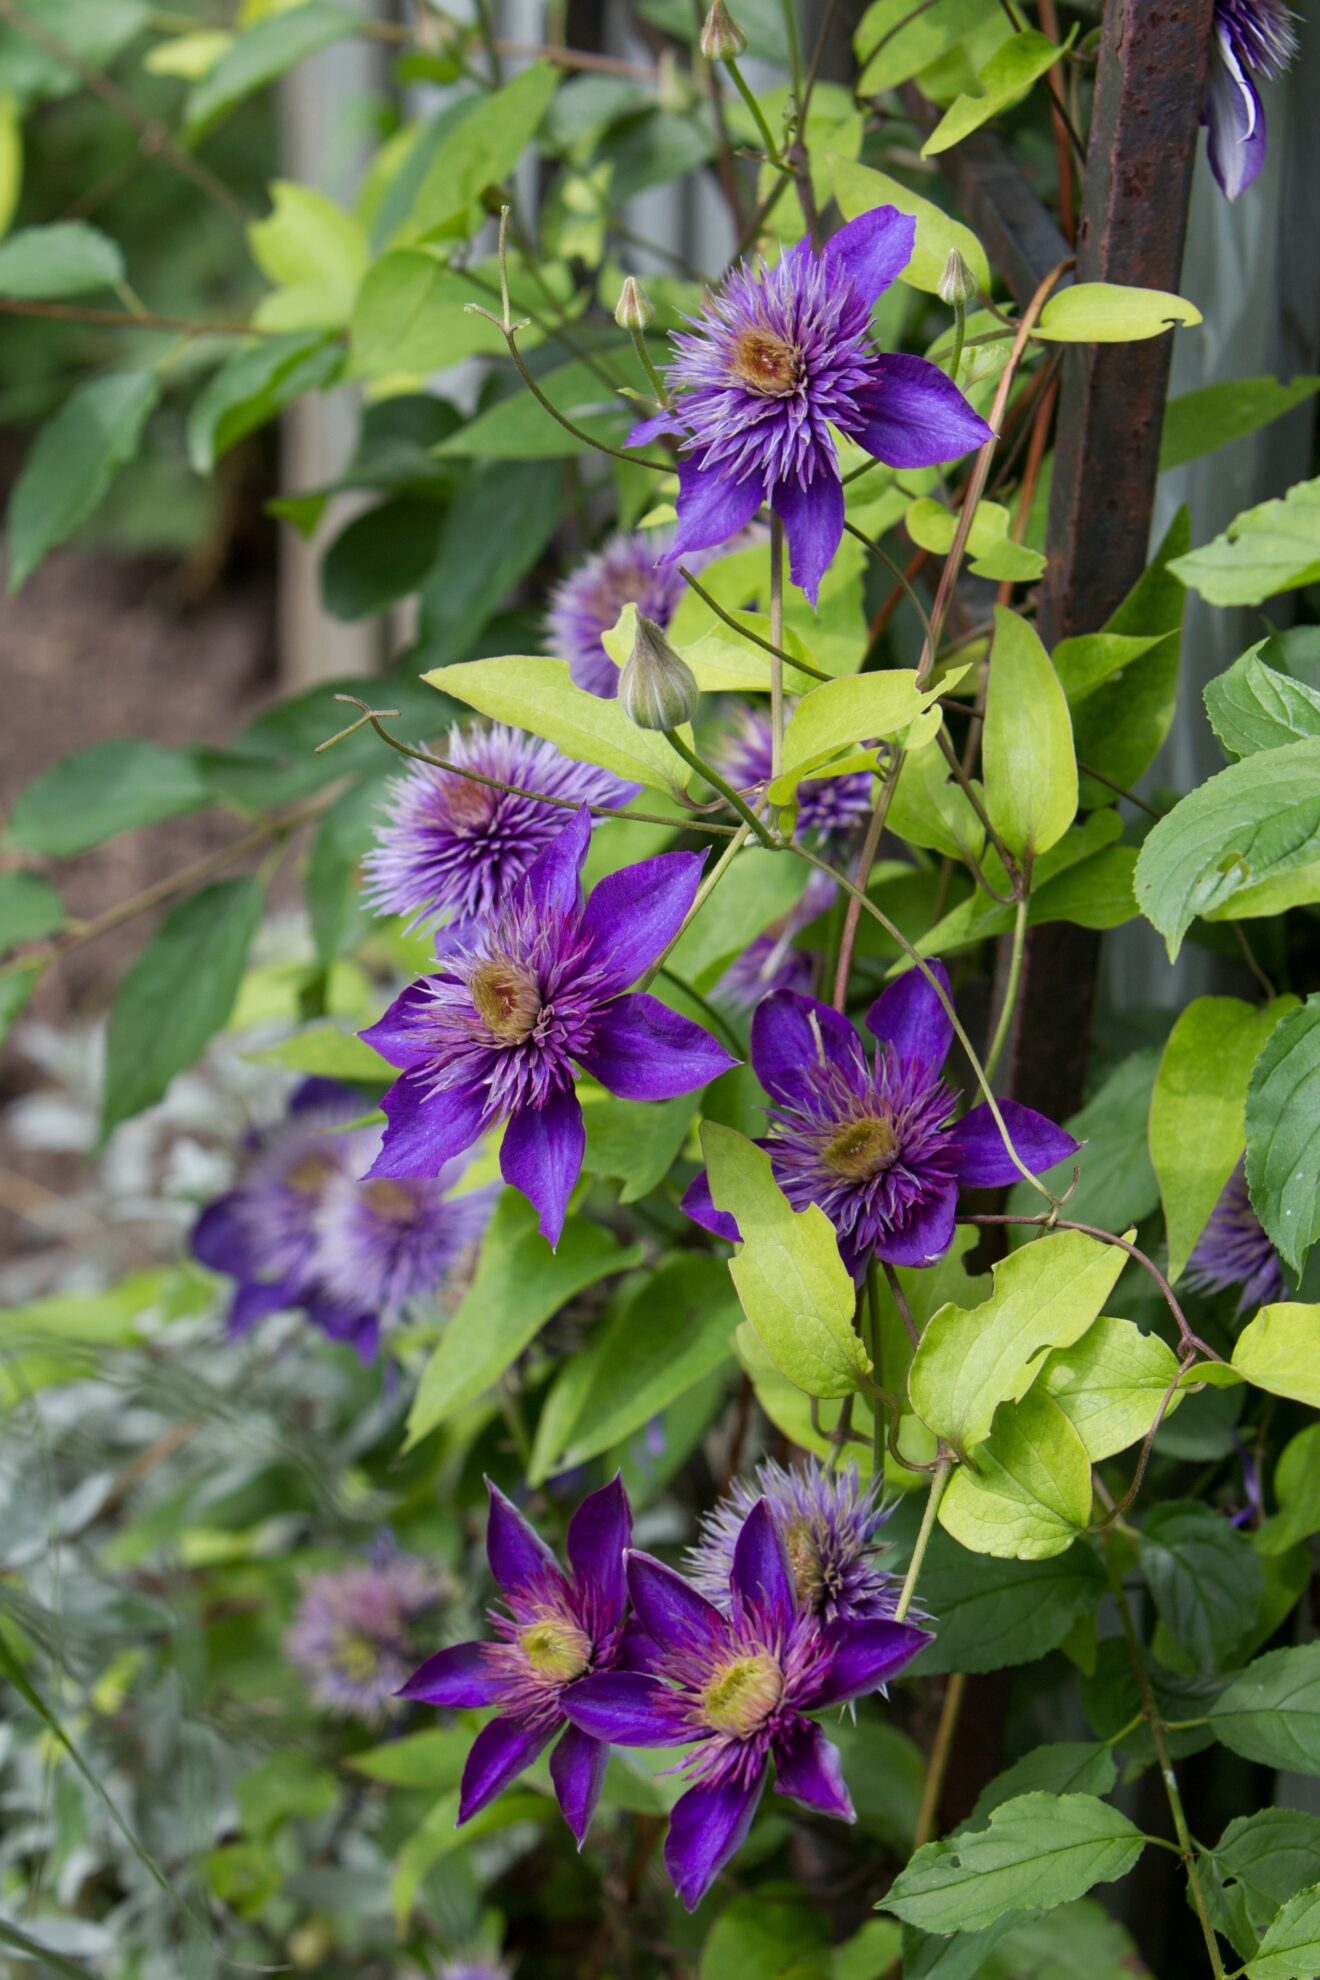 Pruning Clematis - Its All about Groups